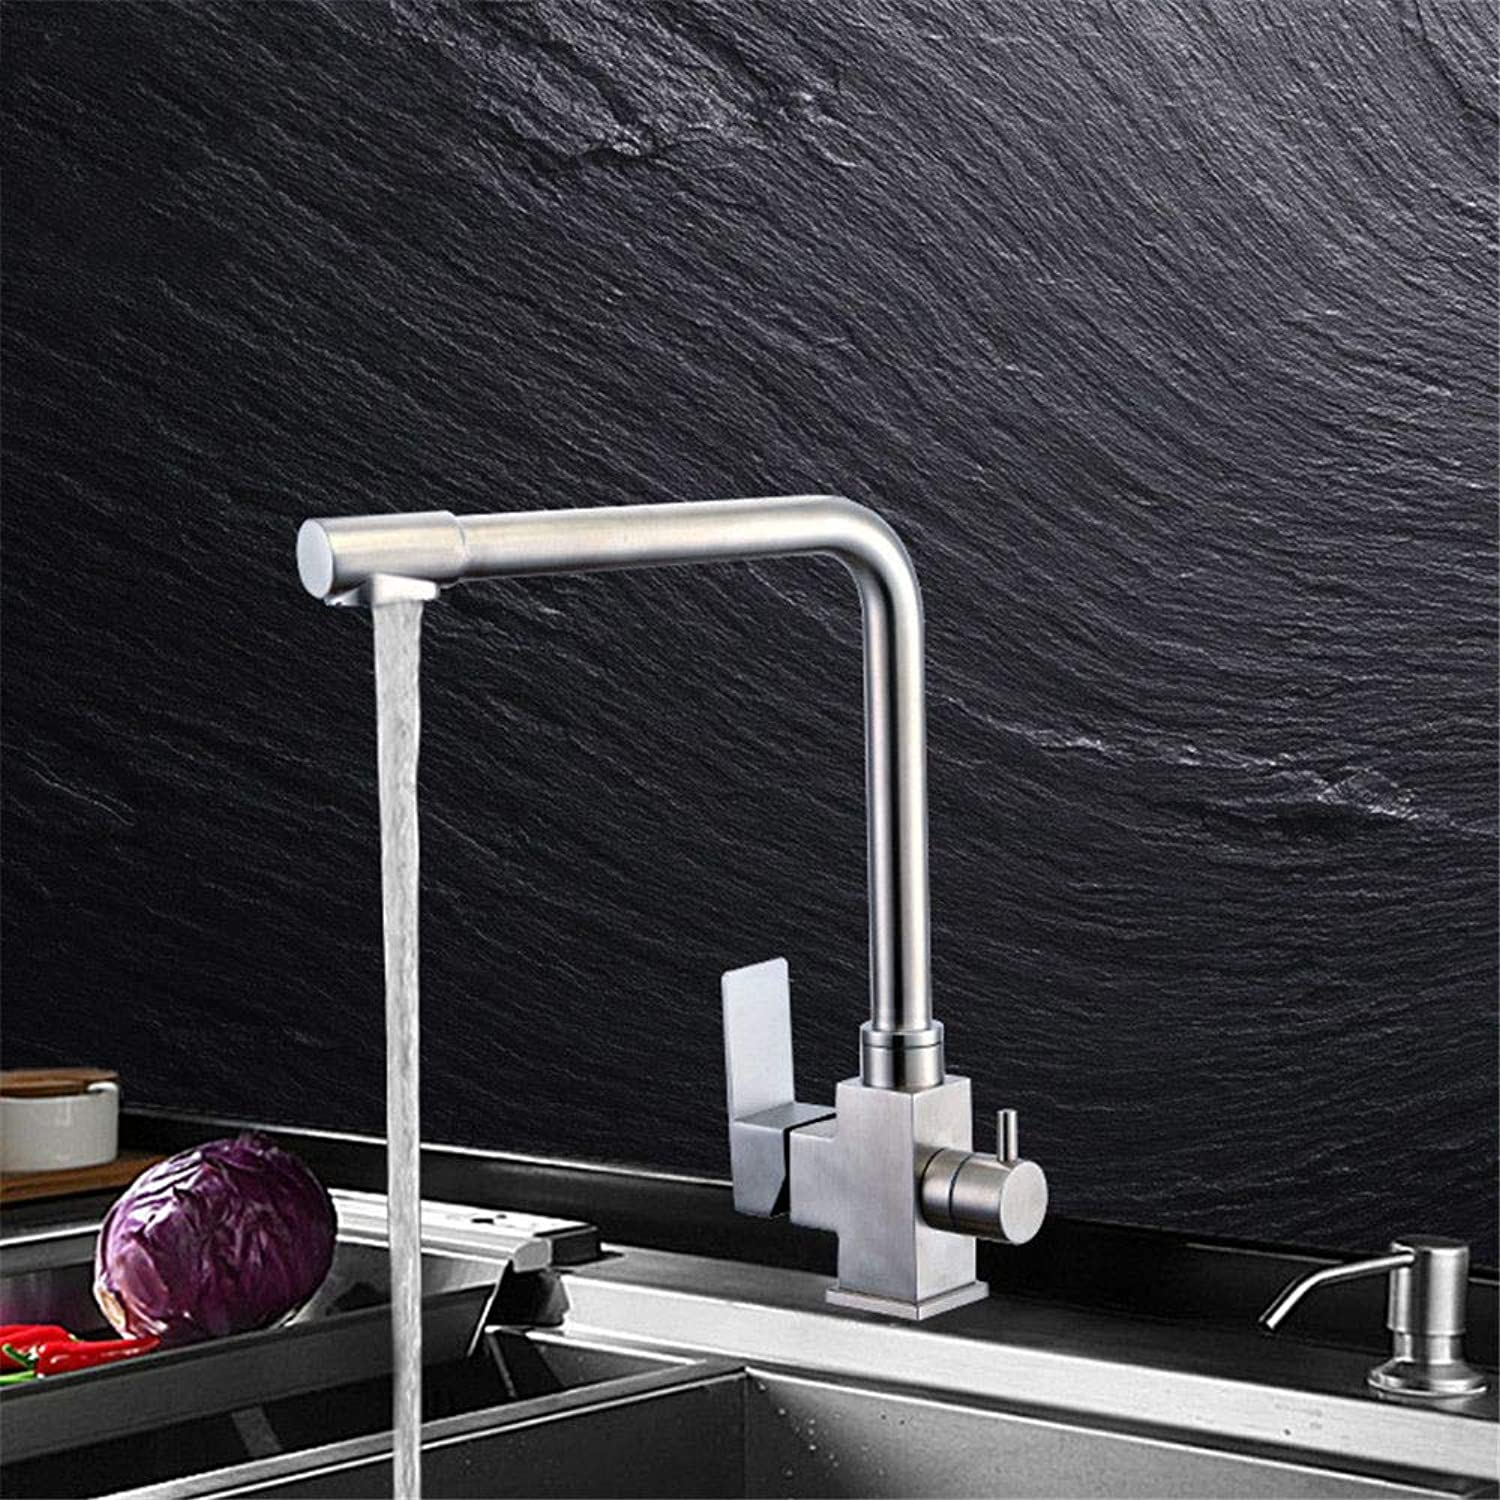 YAWEDA 304 Stainless Steel Hot and Cold Water Mixer Faucet Kitchen Faucet 3 Way with Filter Faucet with Pure Water Table Lower Basin Wash Vegetable Hot Water Mixer Faucet